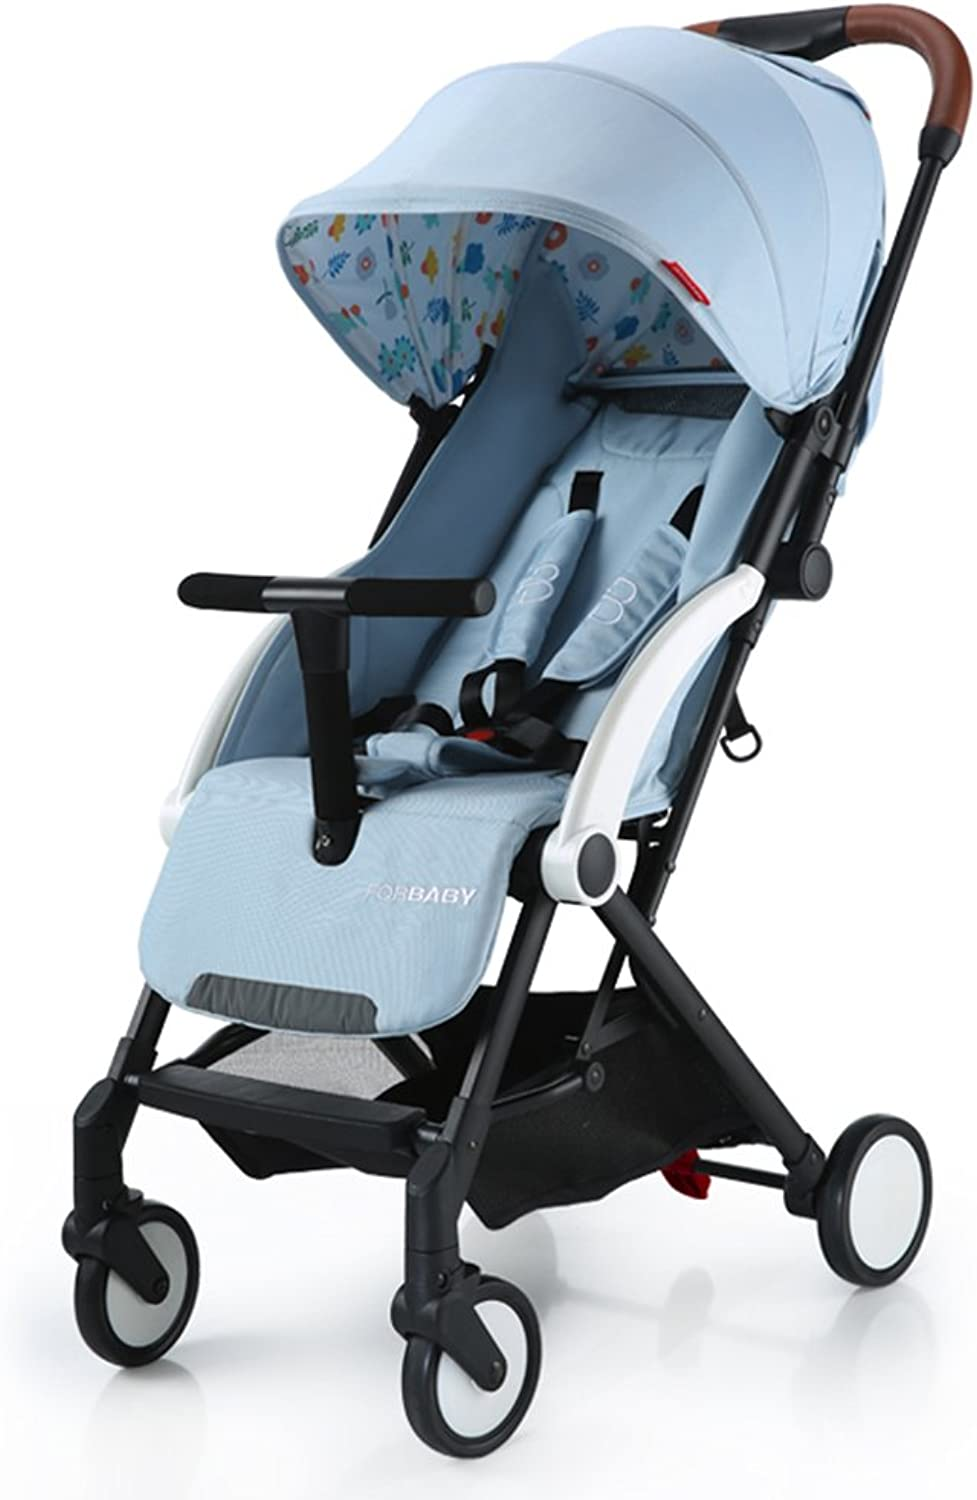 HAIZHEN Intellectual Toy Baby Push Ultralight Can Sit Lie Foldable Baby Carriage Adjust Sunshade Awning AntiUV Sun Predection EVA Foam Shock Absorber Tire Trolley 60  41  103cm Boy and Girl Gifts